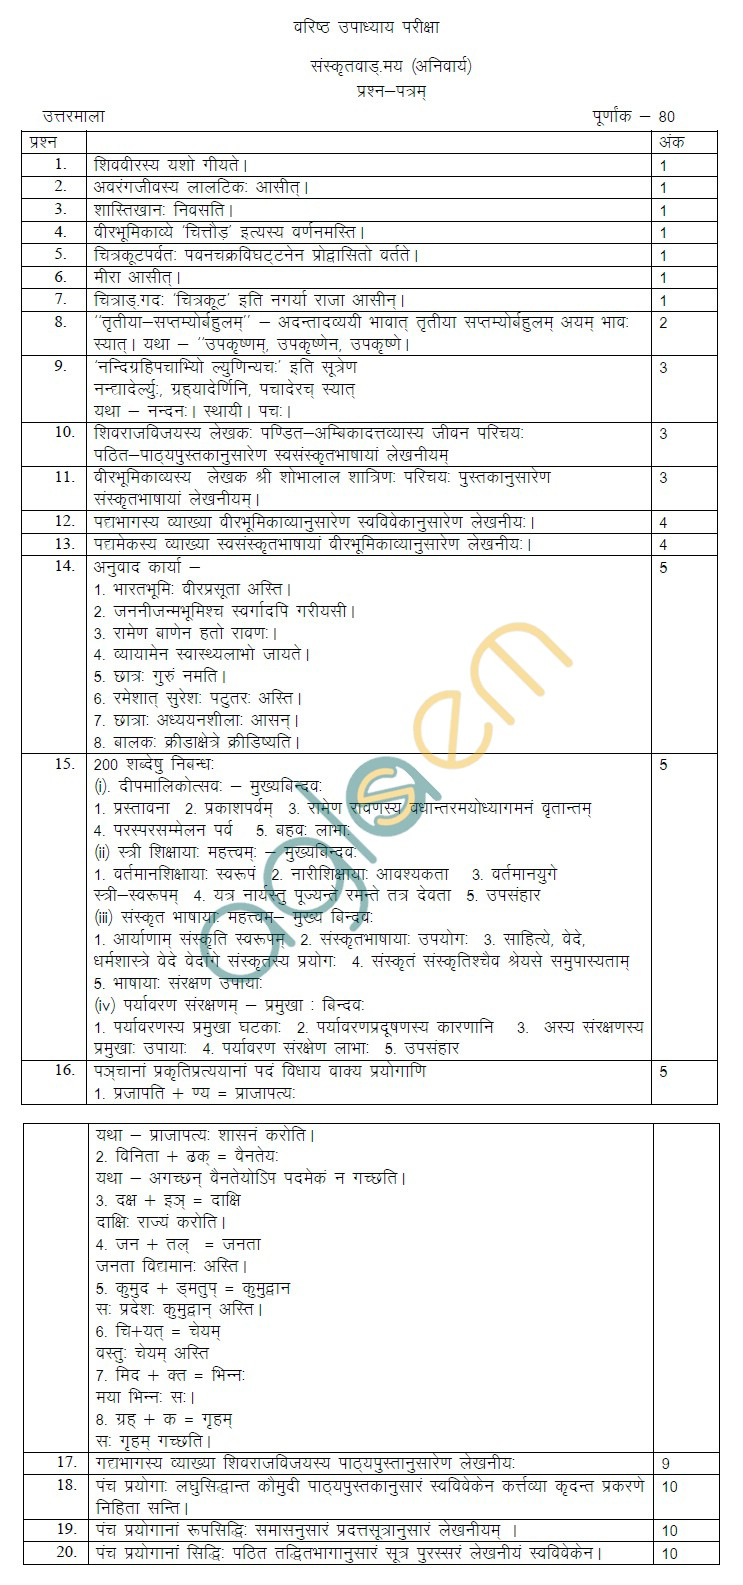 Rajasthan Board Class 12 Sanskrit Vangmay Model Question Paper